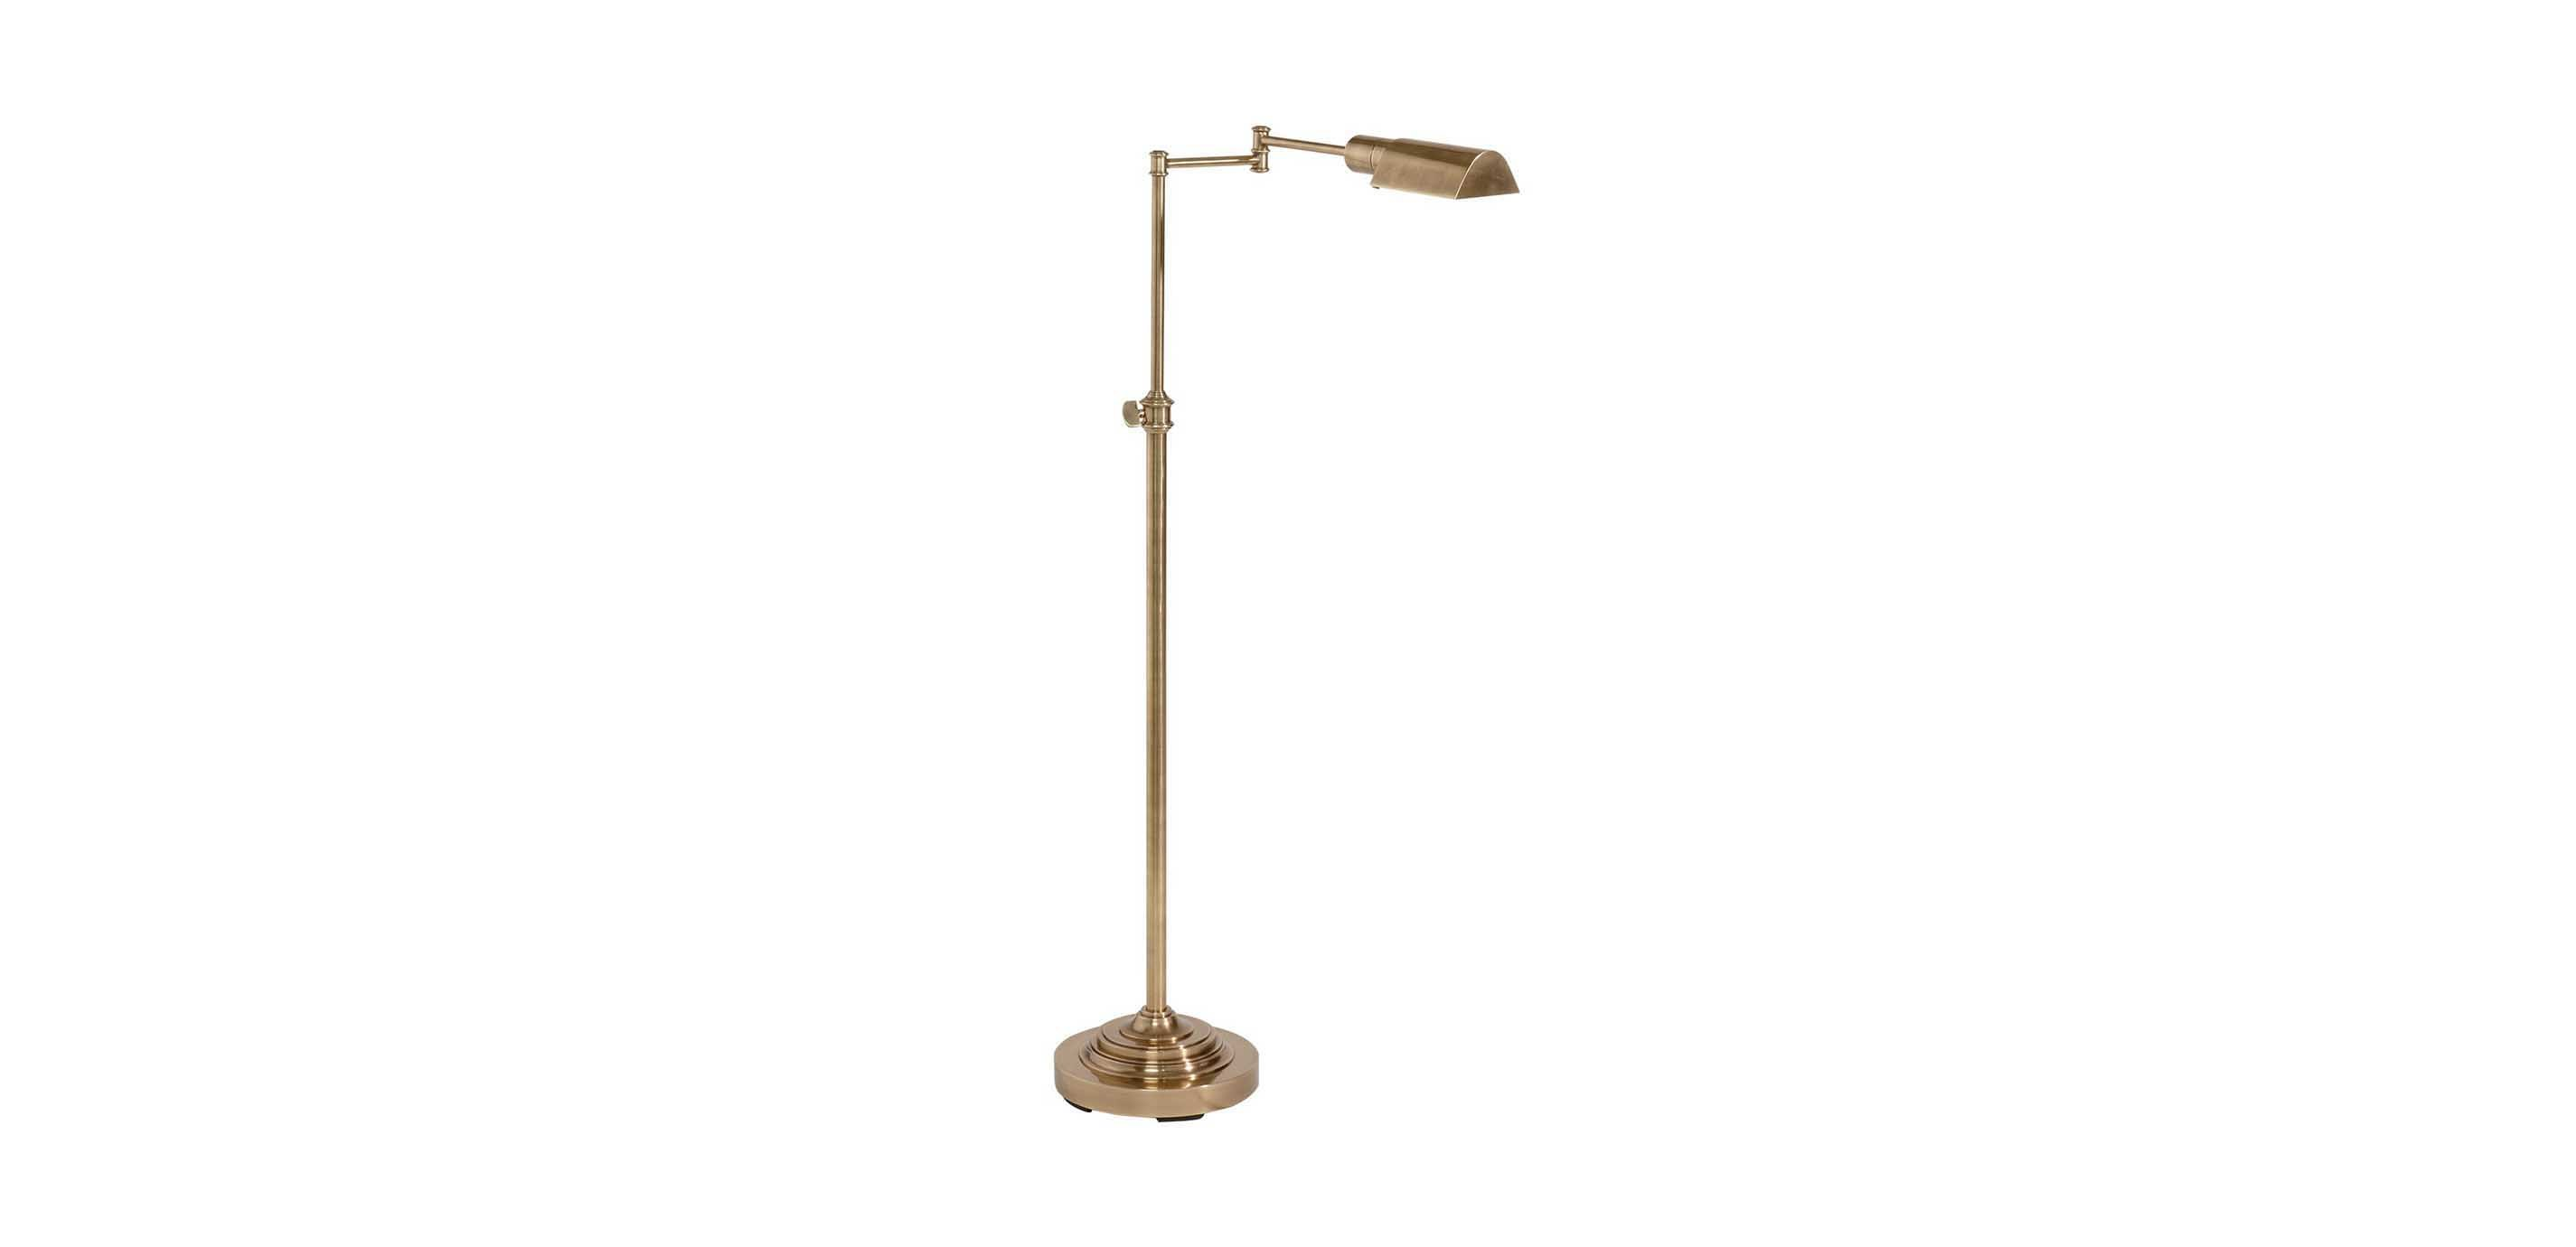 Brass pharmacy floor lamp floor lamps ethan allen for 8 floor lamp